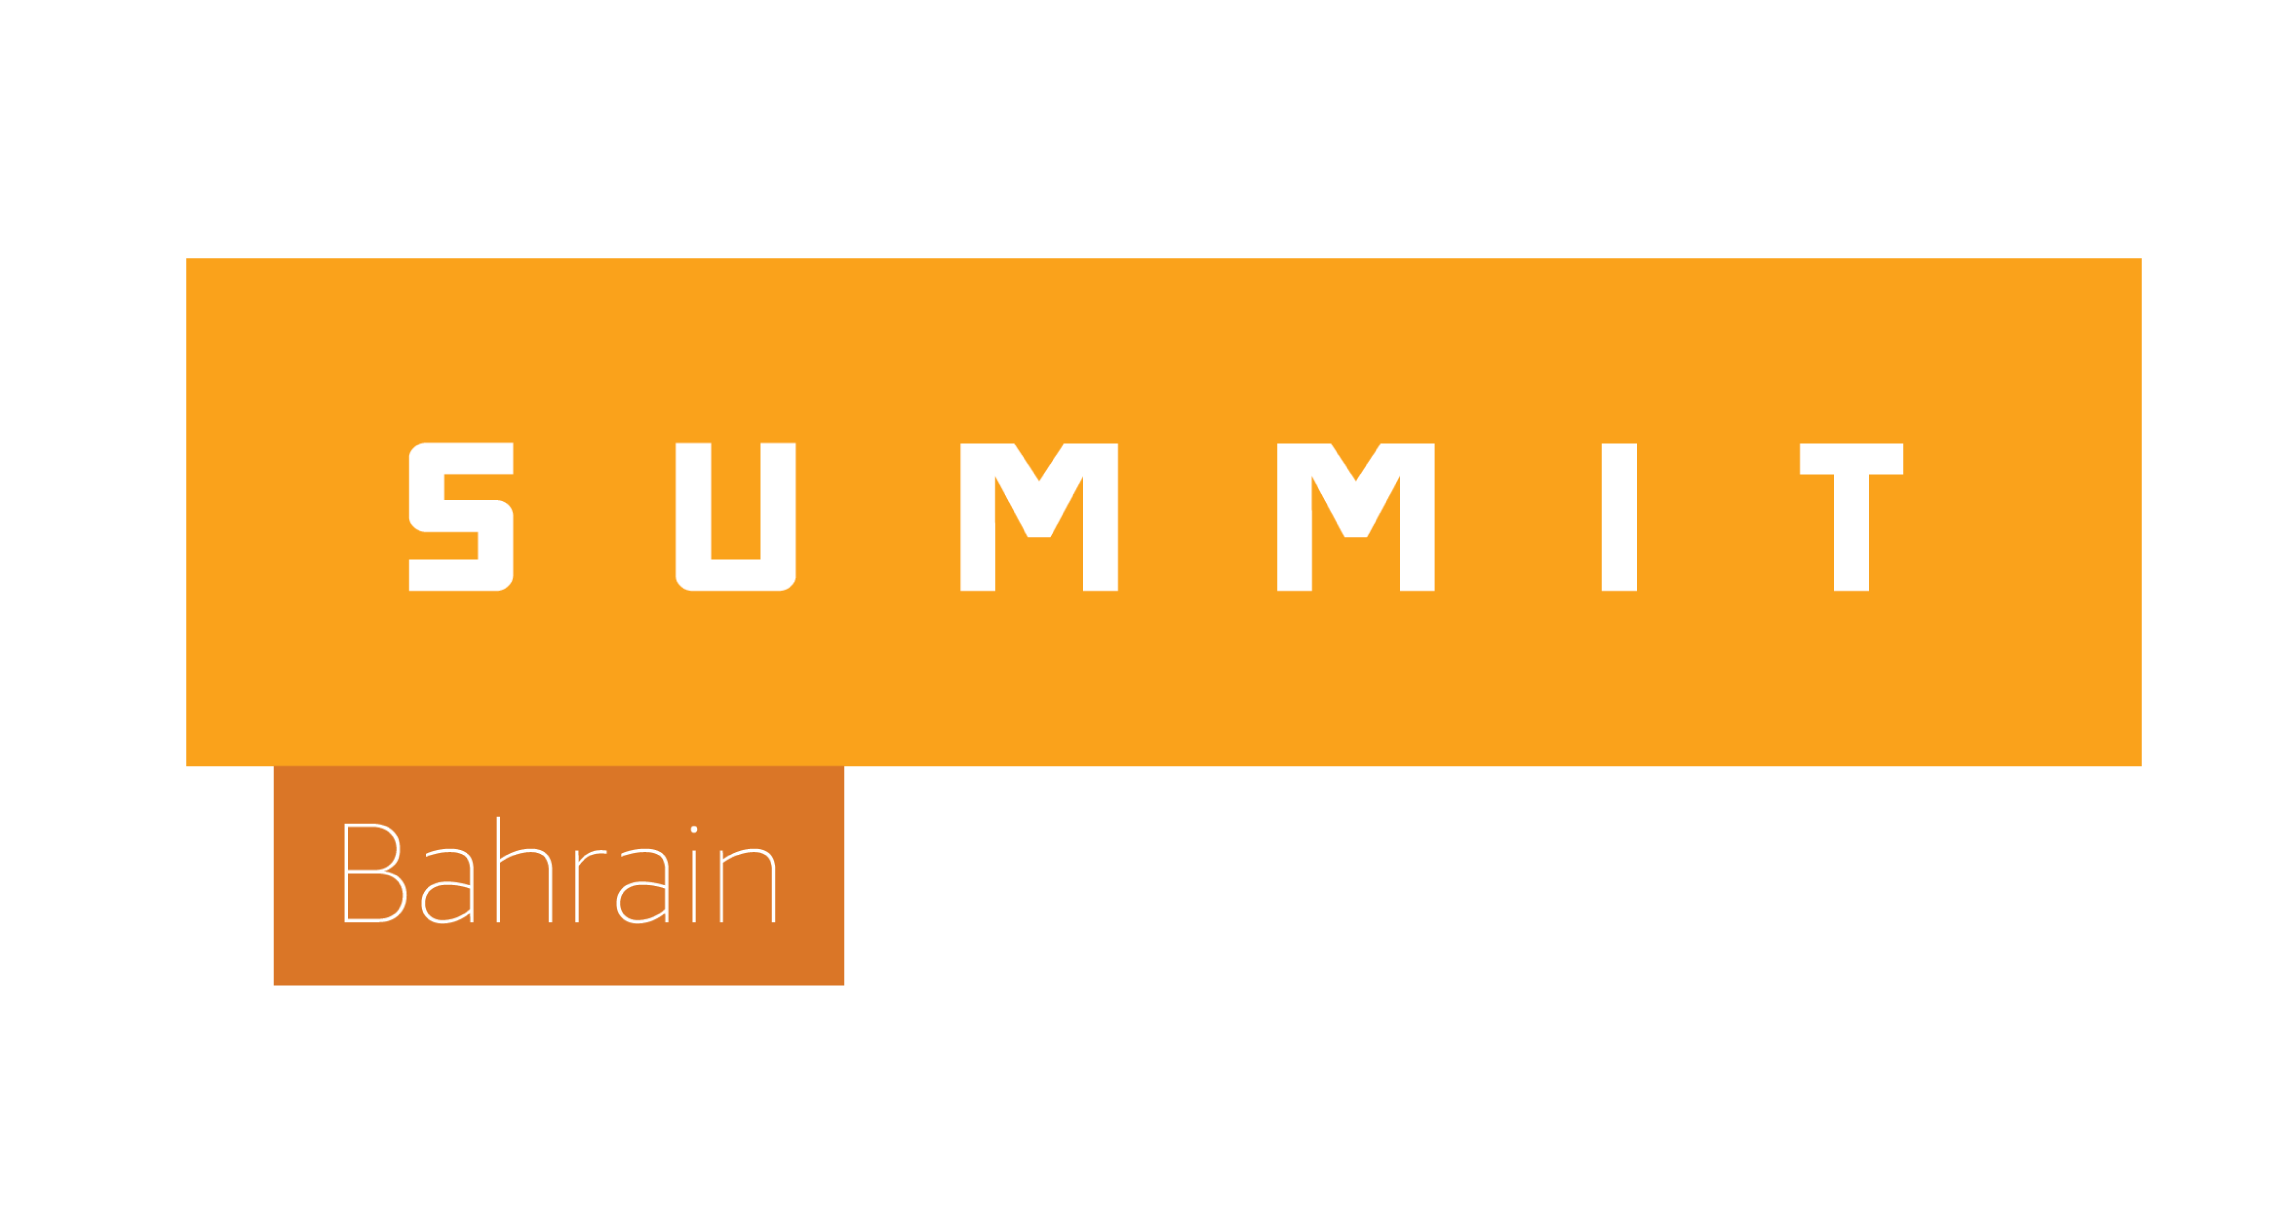 AWS Bahrain Summit